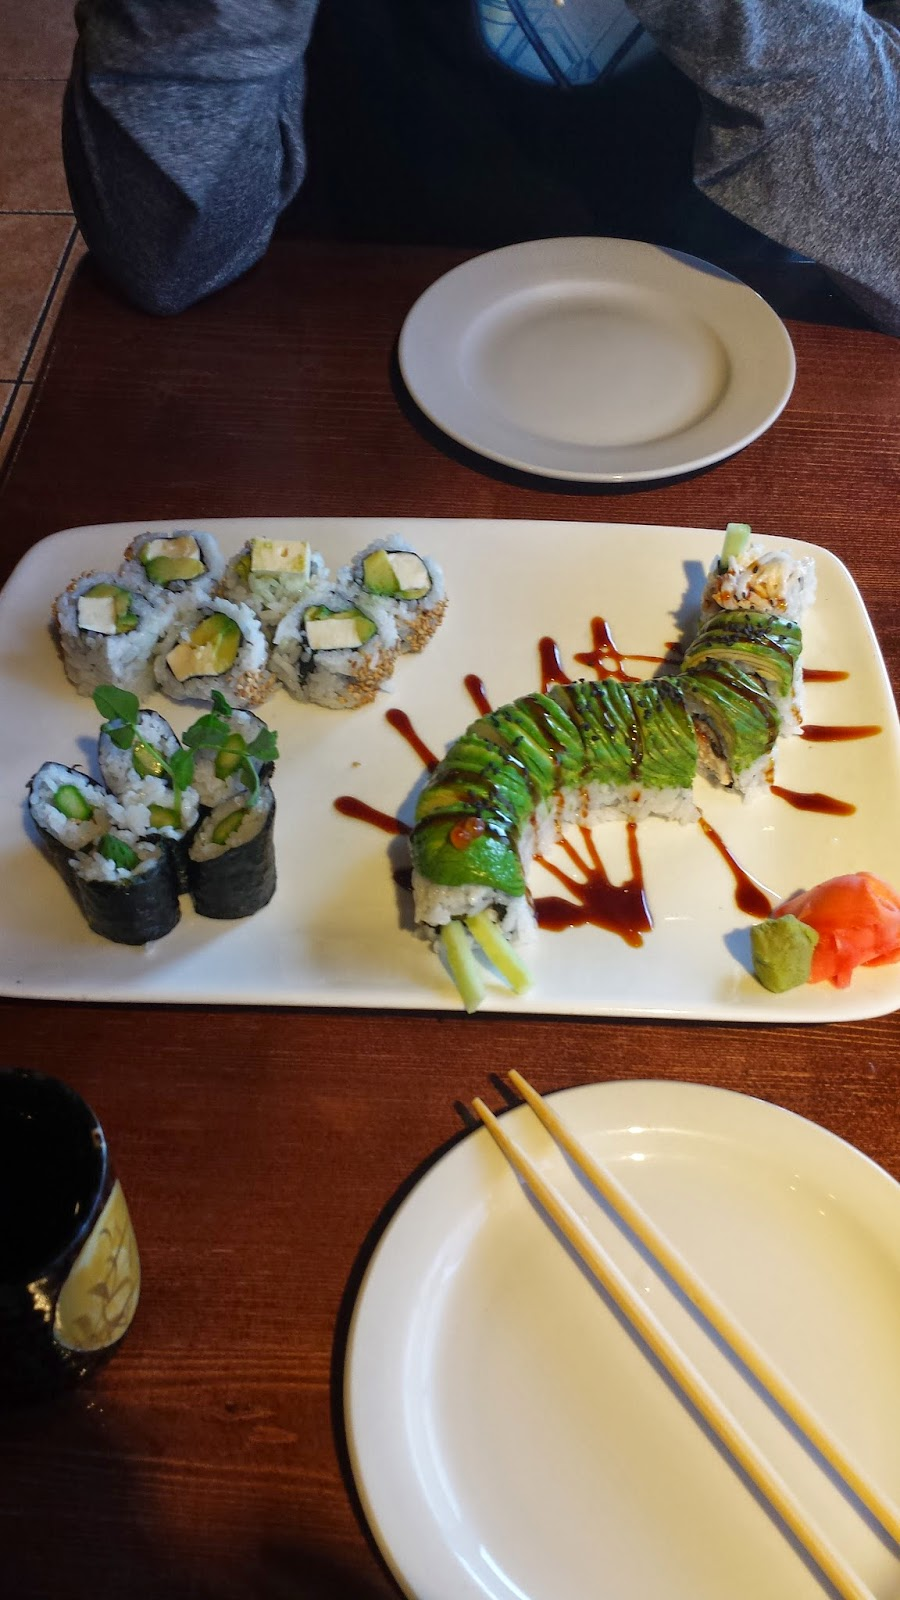 Caterpillar roll sushi roll.